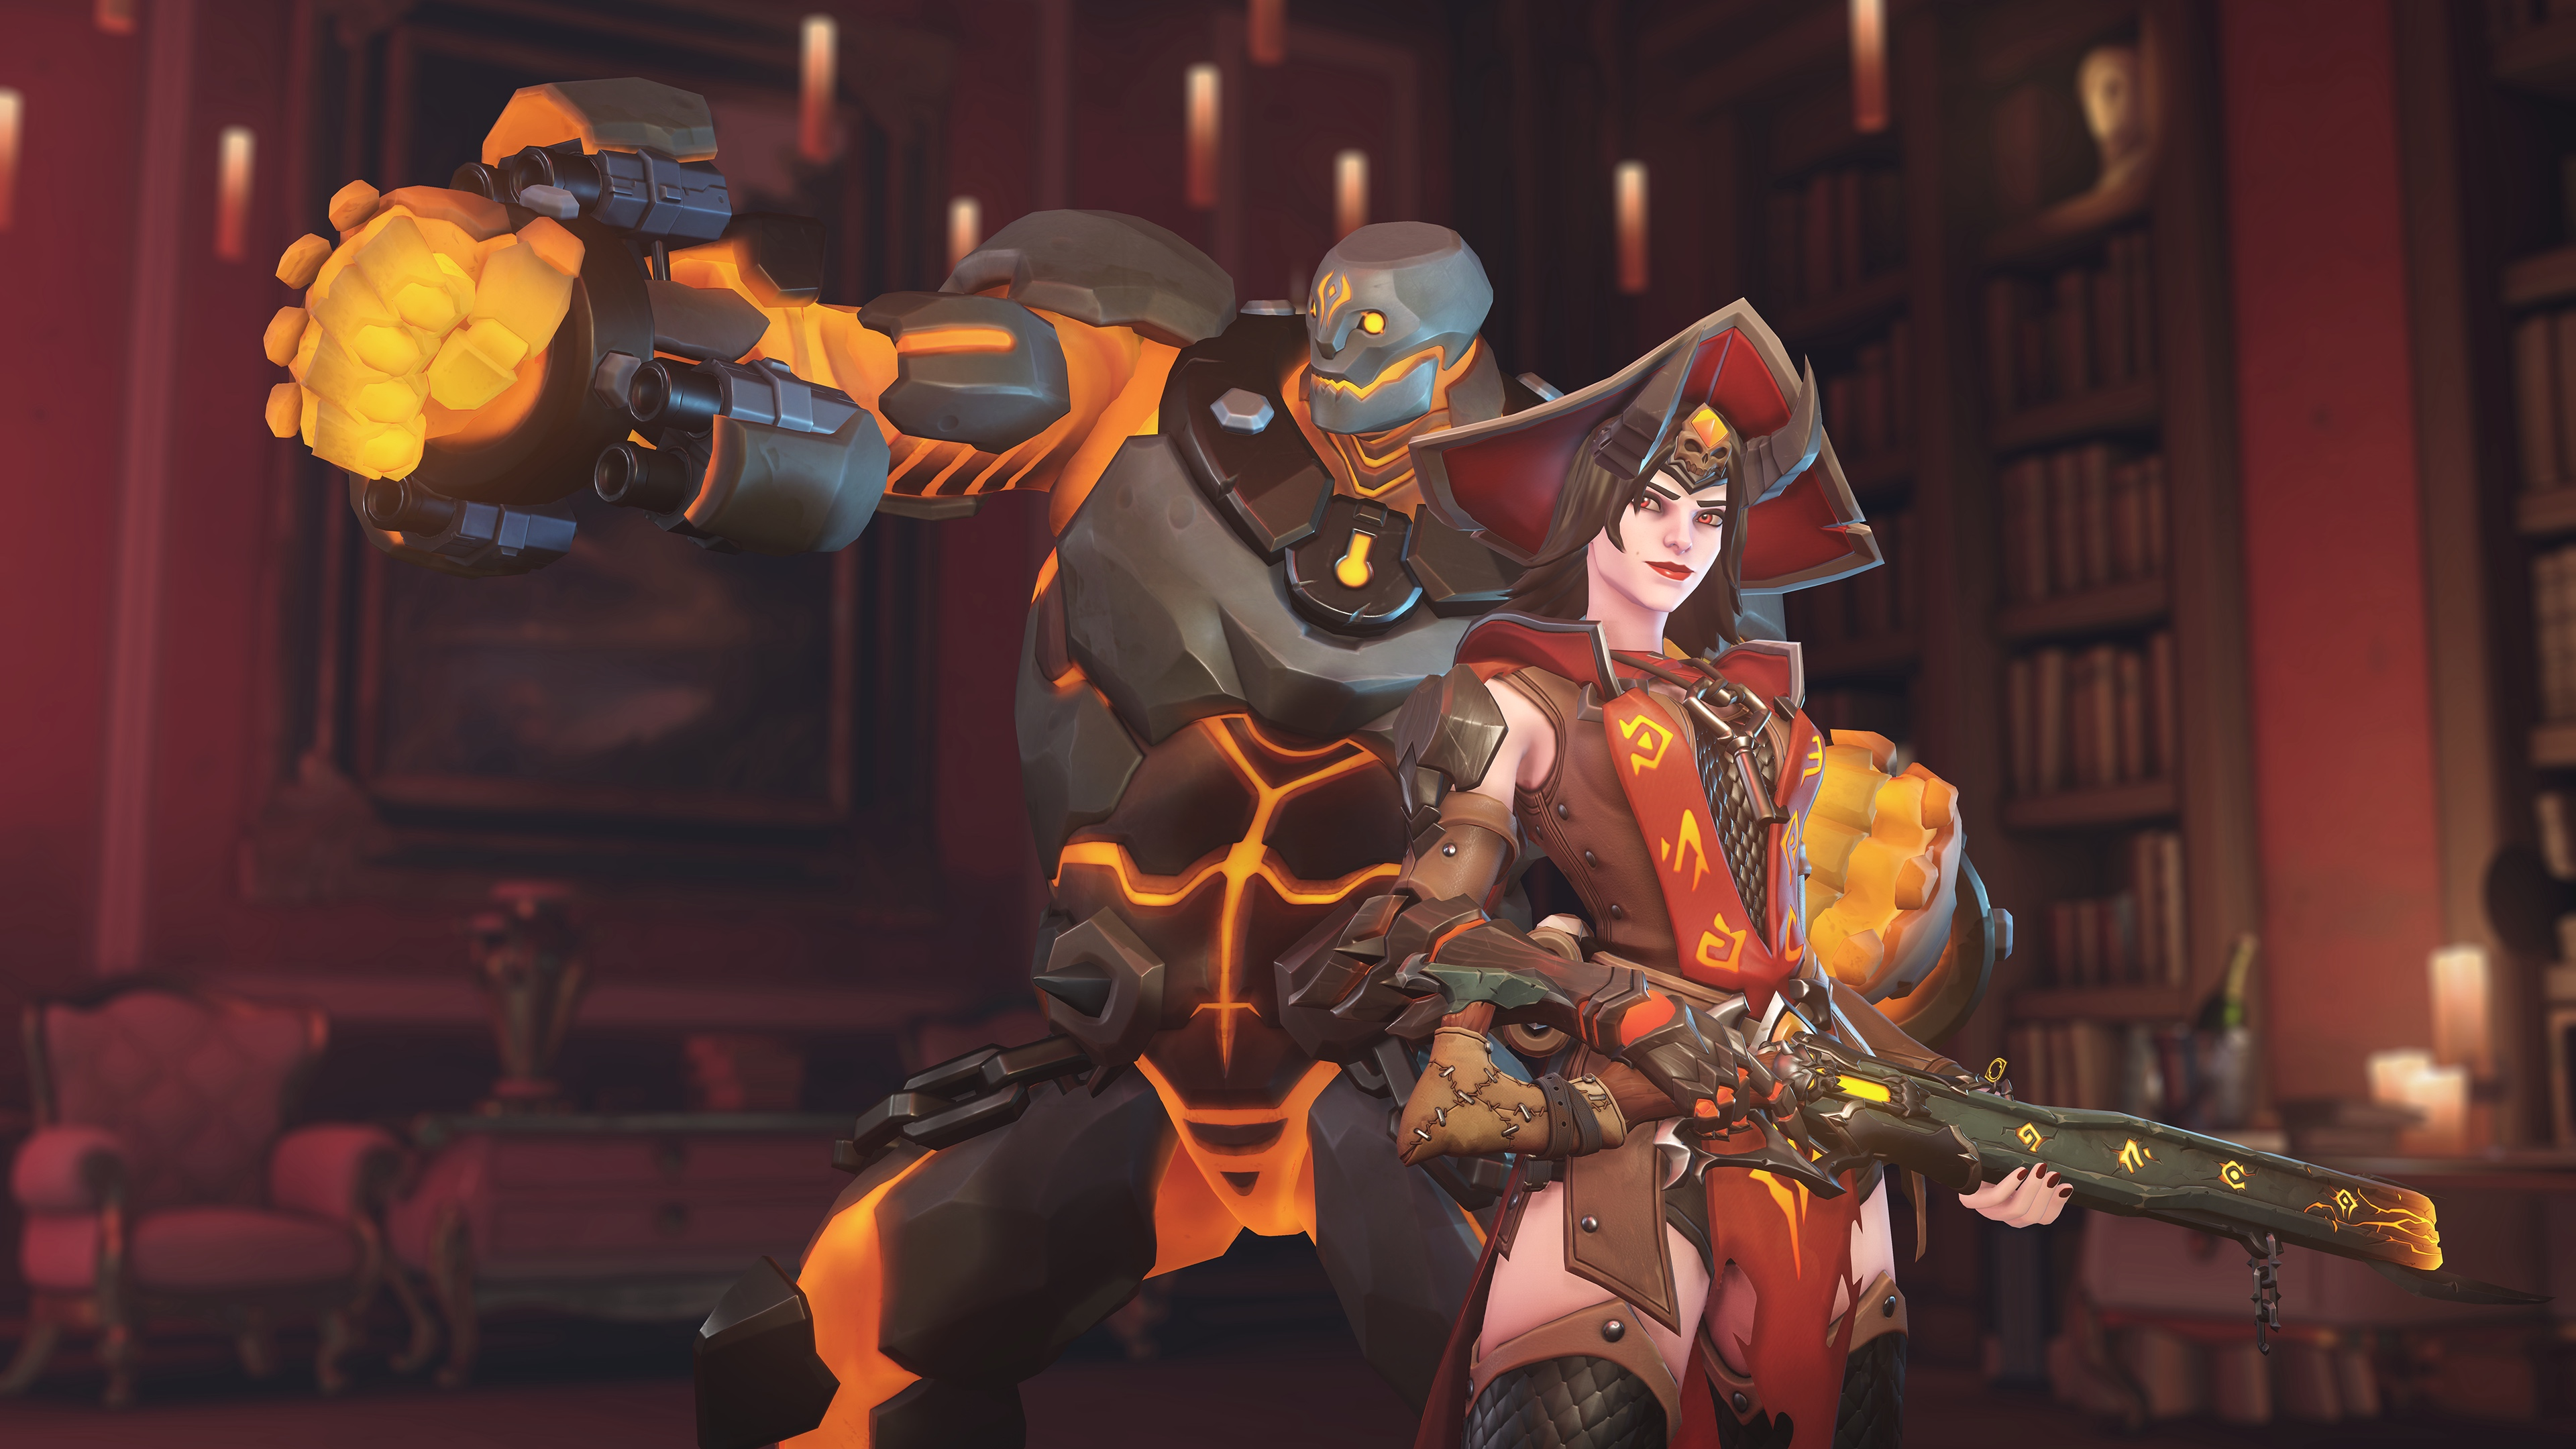 Ashe and Bob wearing Halloween themed skins in a screenshot from Overwatch